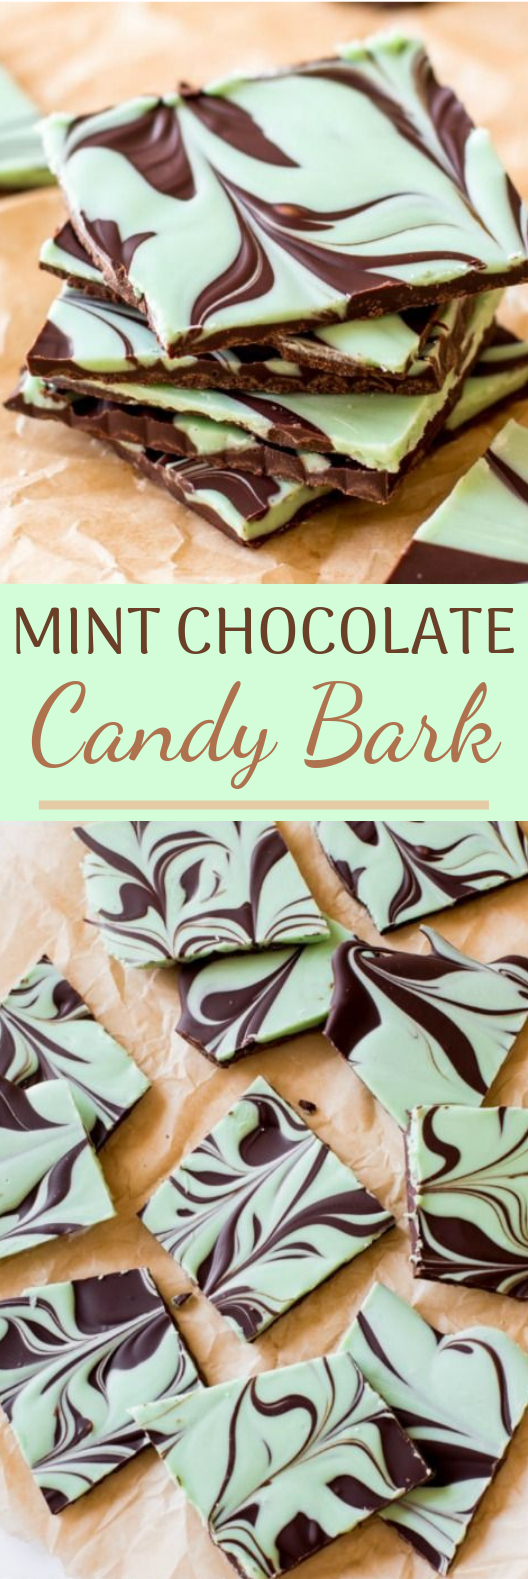 Mint Chocolate Candy Bark #desserts #chocolate